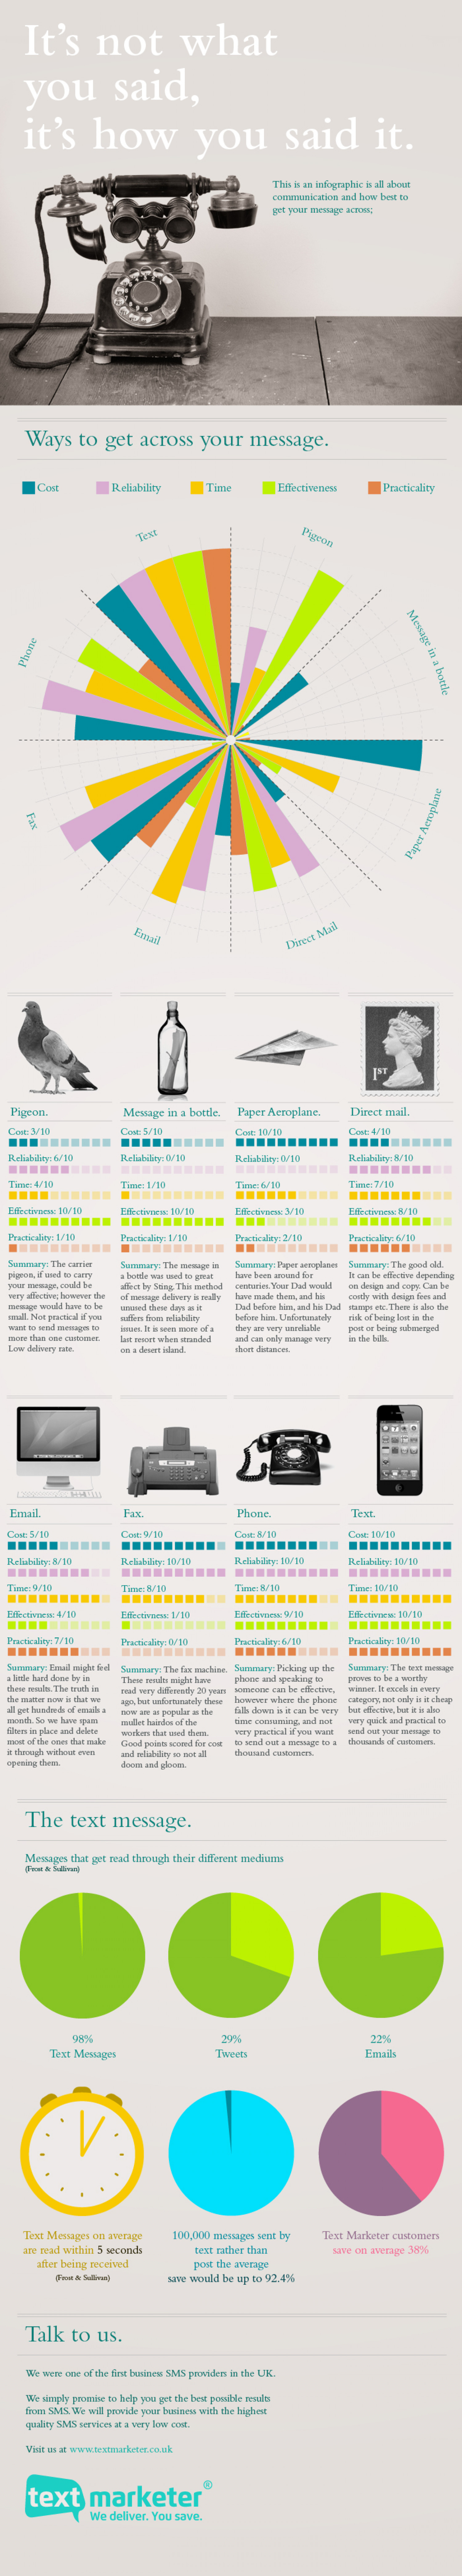 It's not what you said, it's how you said it Infographic